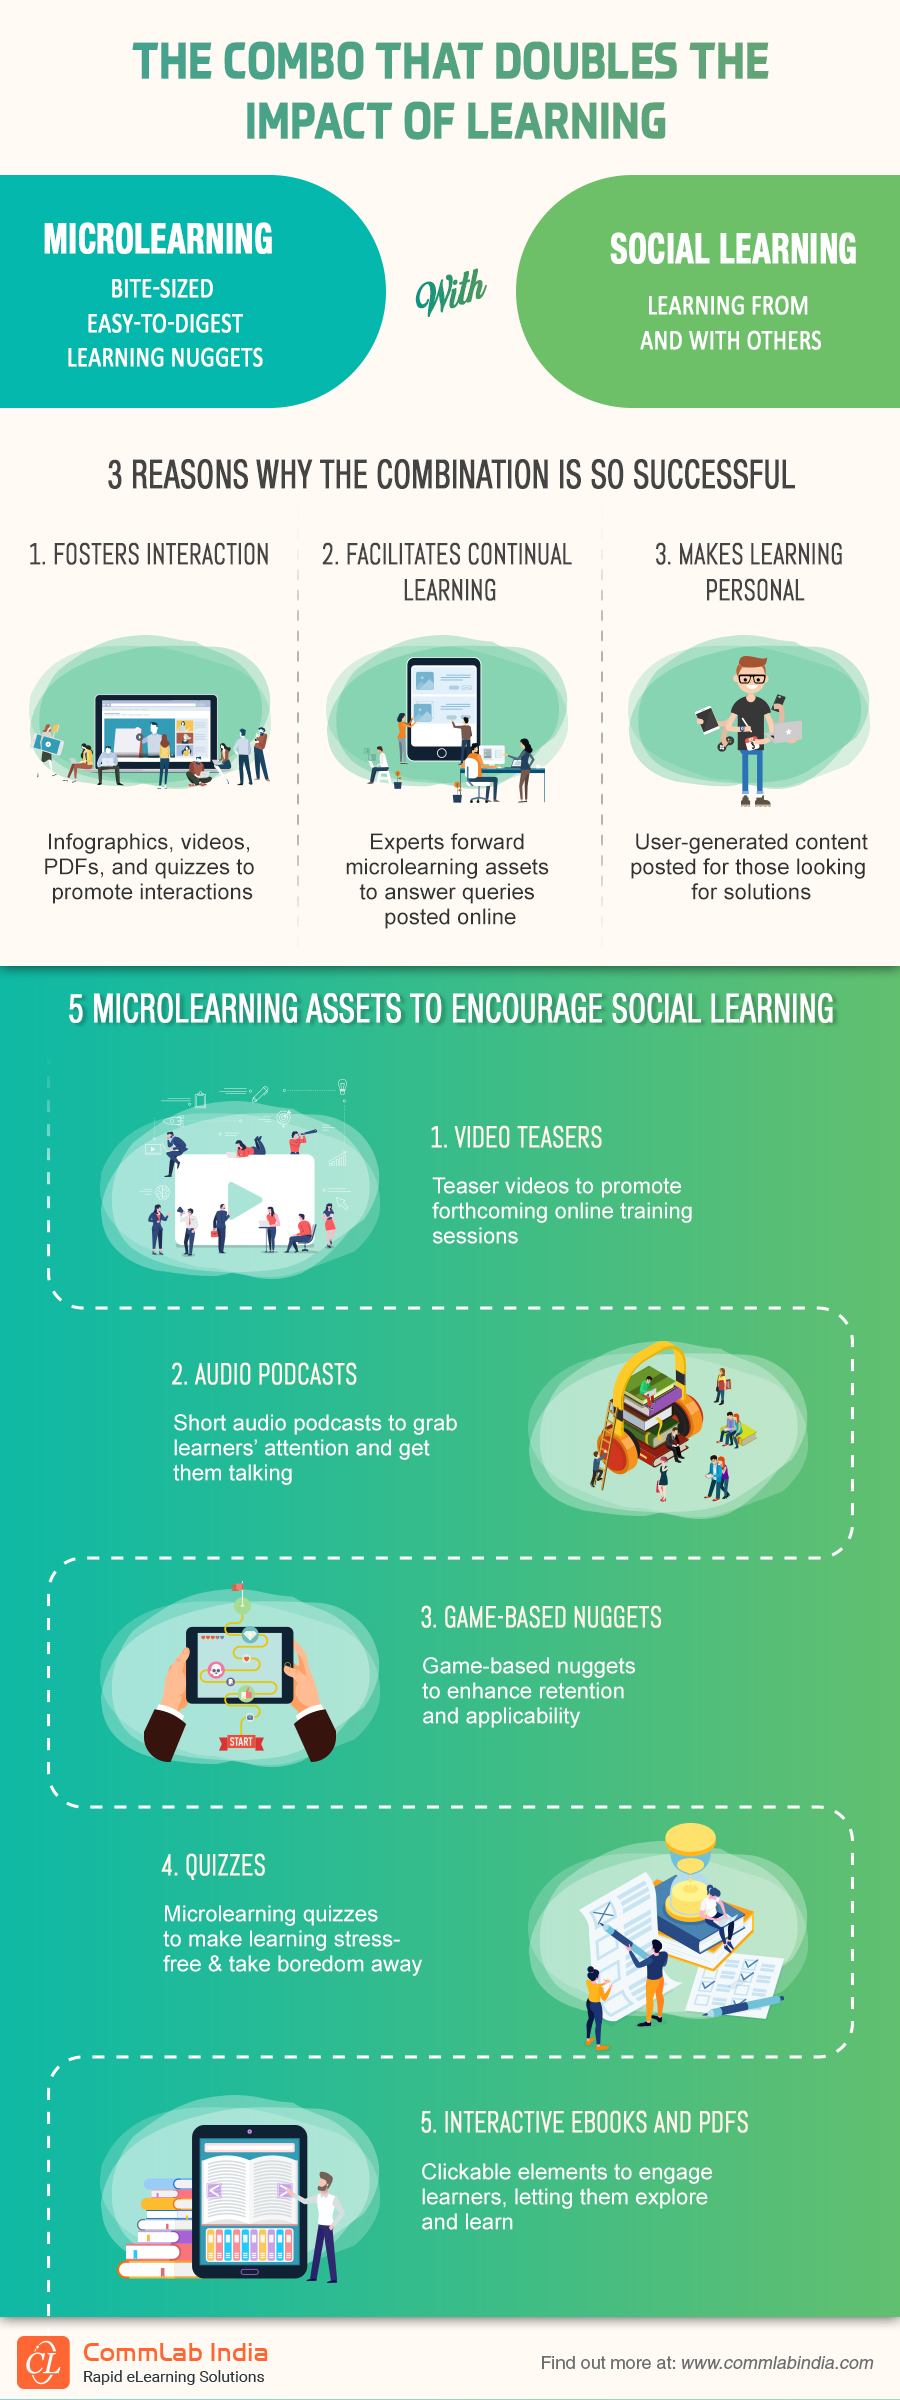 Microlearning + Social Learning: Doubling the Impact of Learning [Infographic]